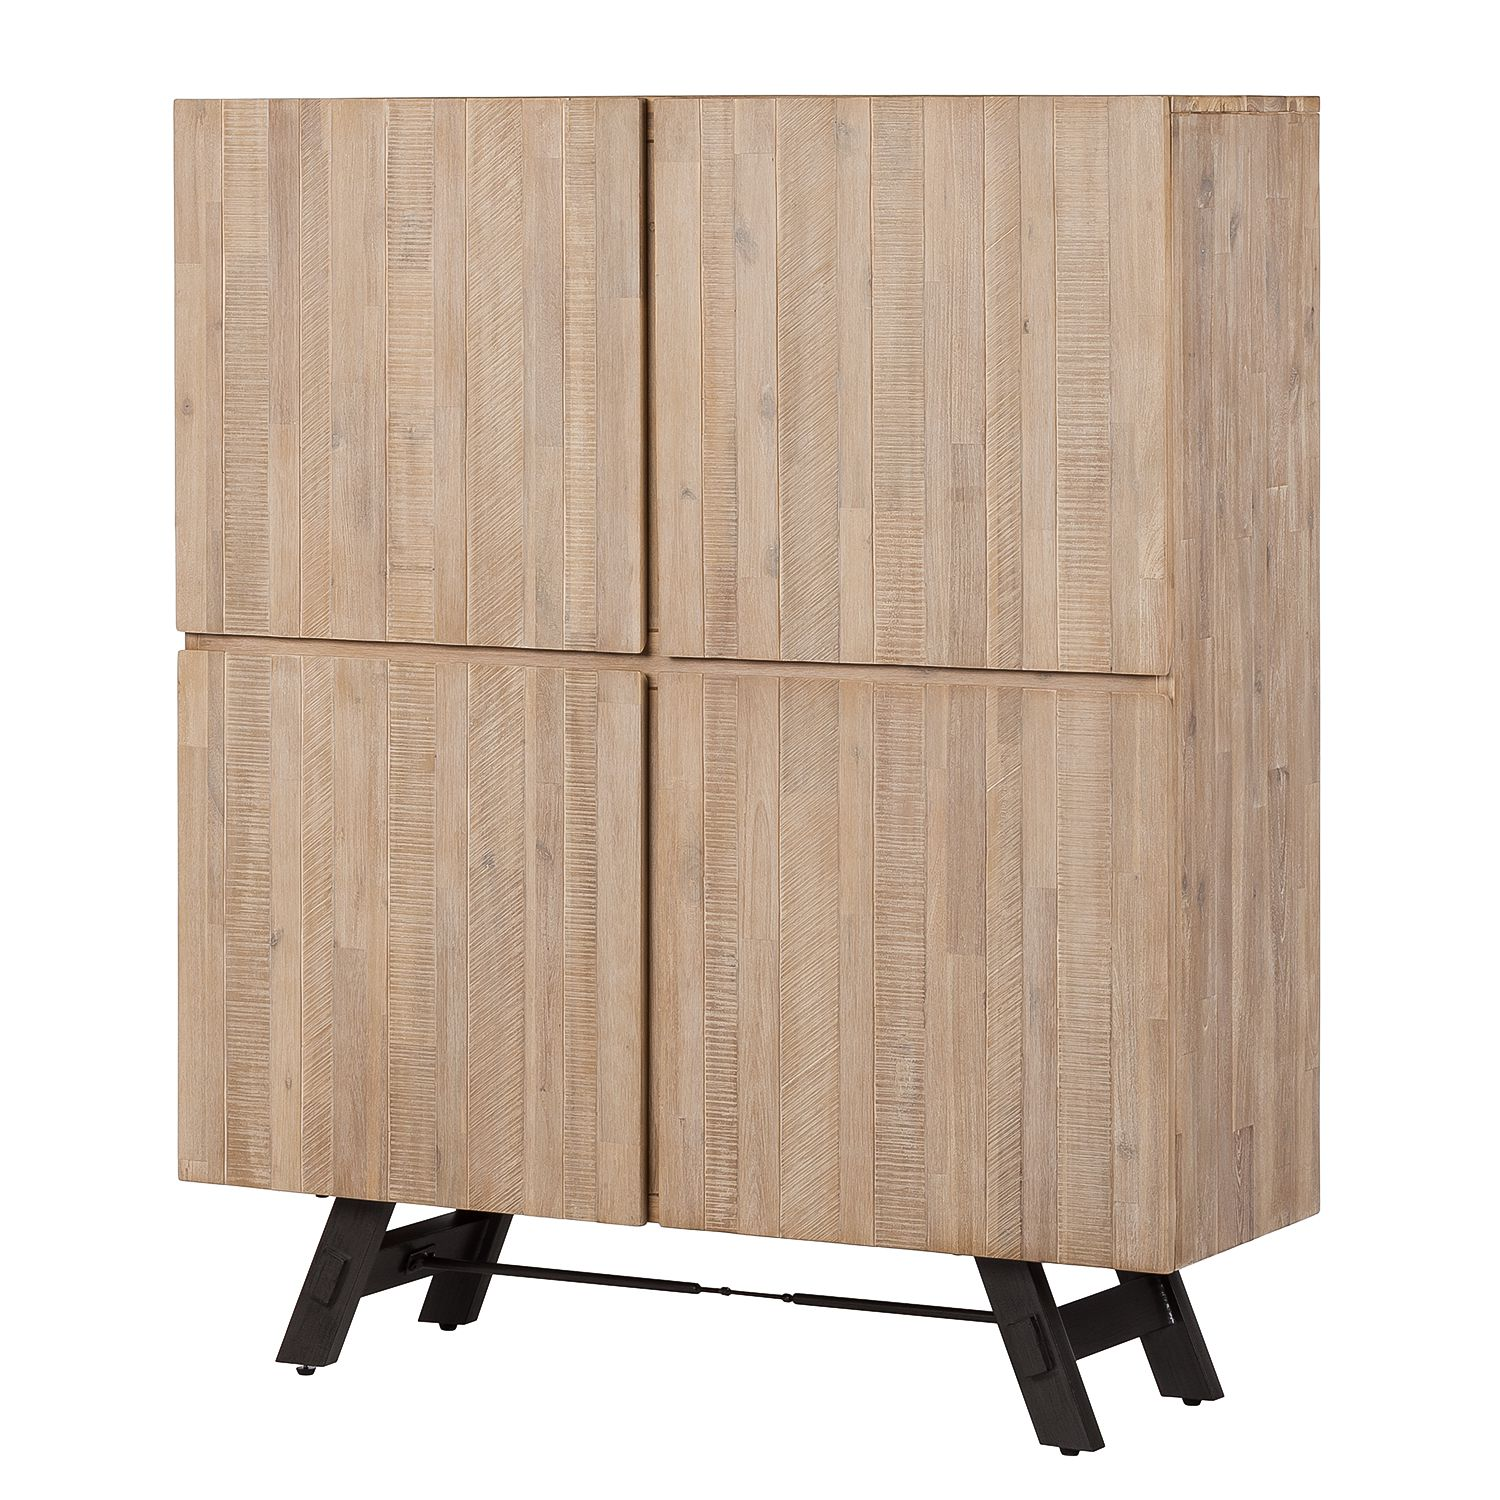 Highboard Esszimmer Highboard Gnstig Kaufen Affordable Parisot Esszimmer